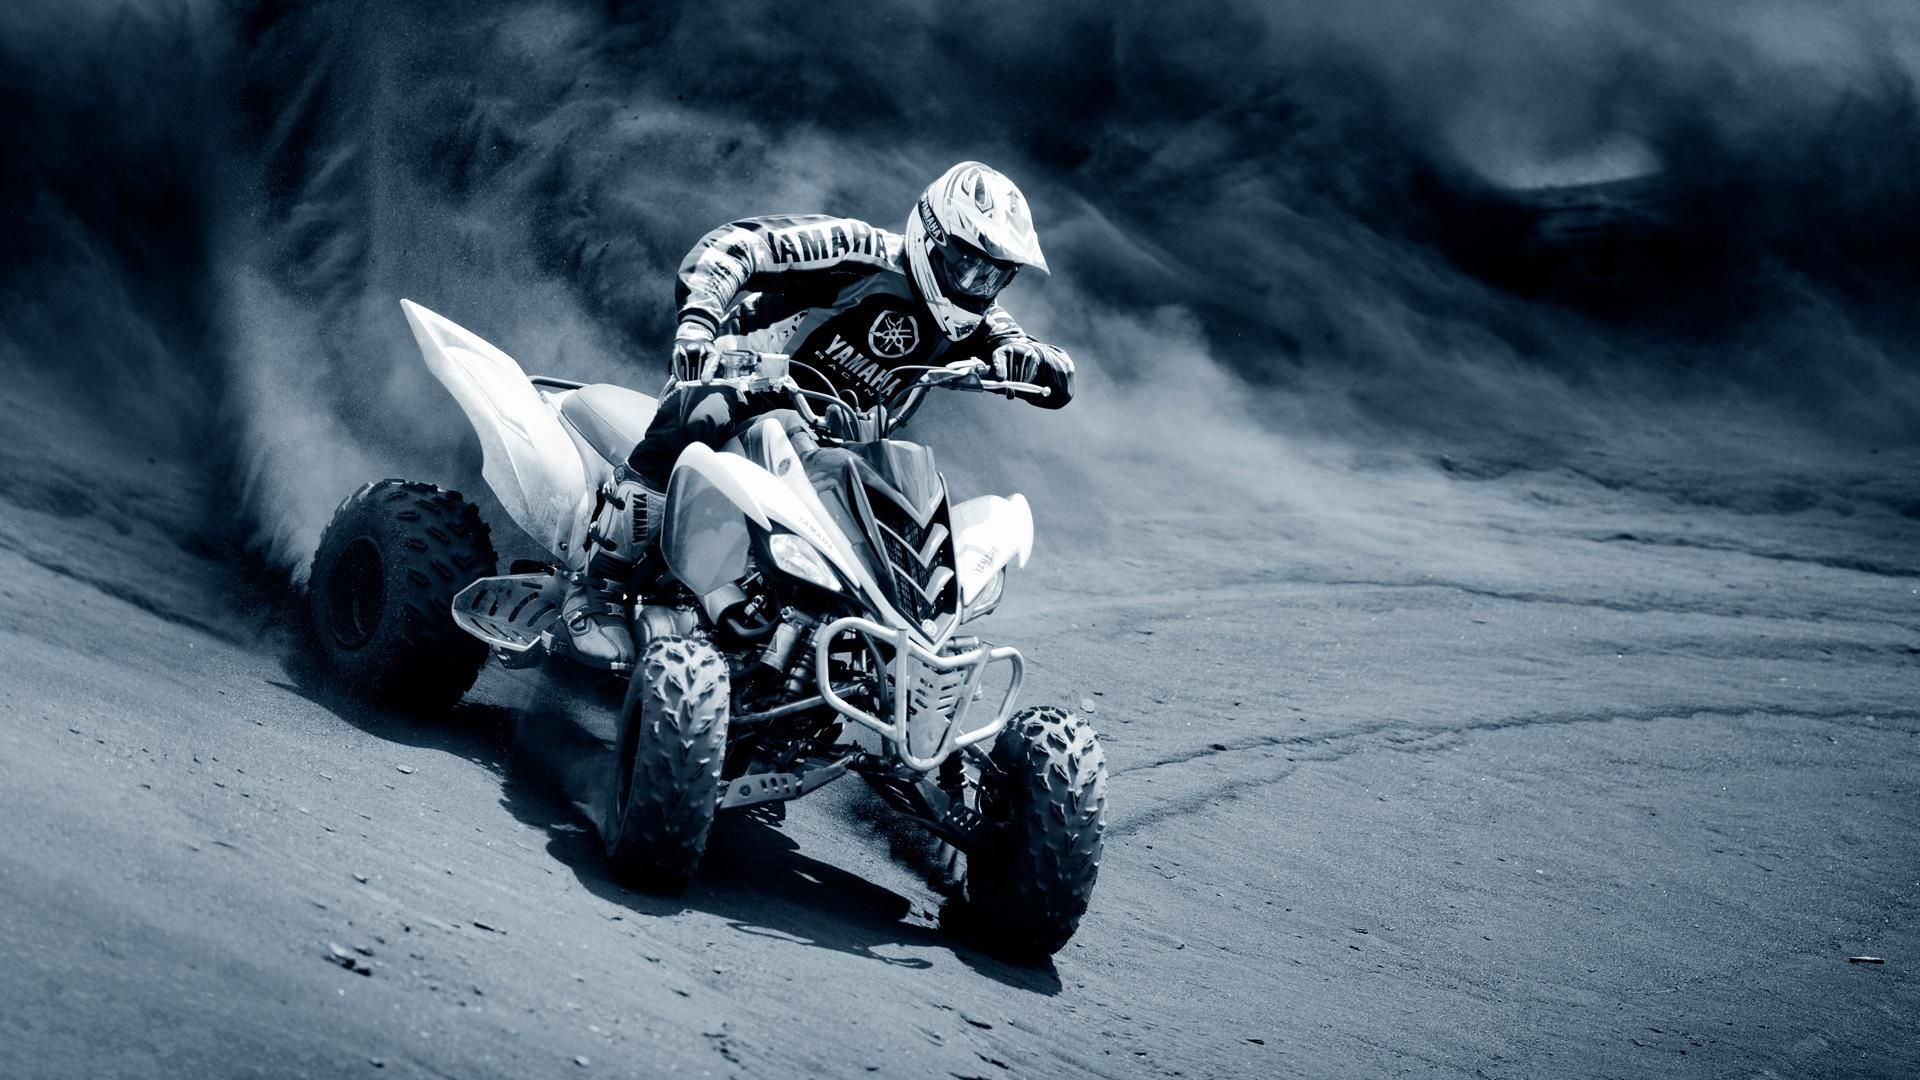 The Two Wheels Can T Stand Out Over This Wether We Can Do More Over The Four One Right Atv Motocross Yamaha Sport Sports Wallpapers